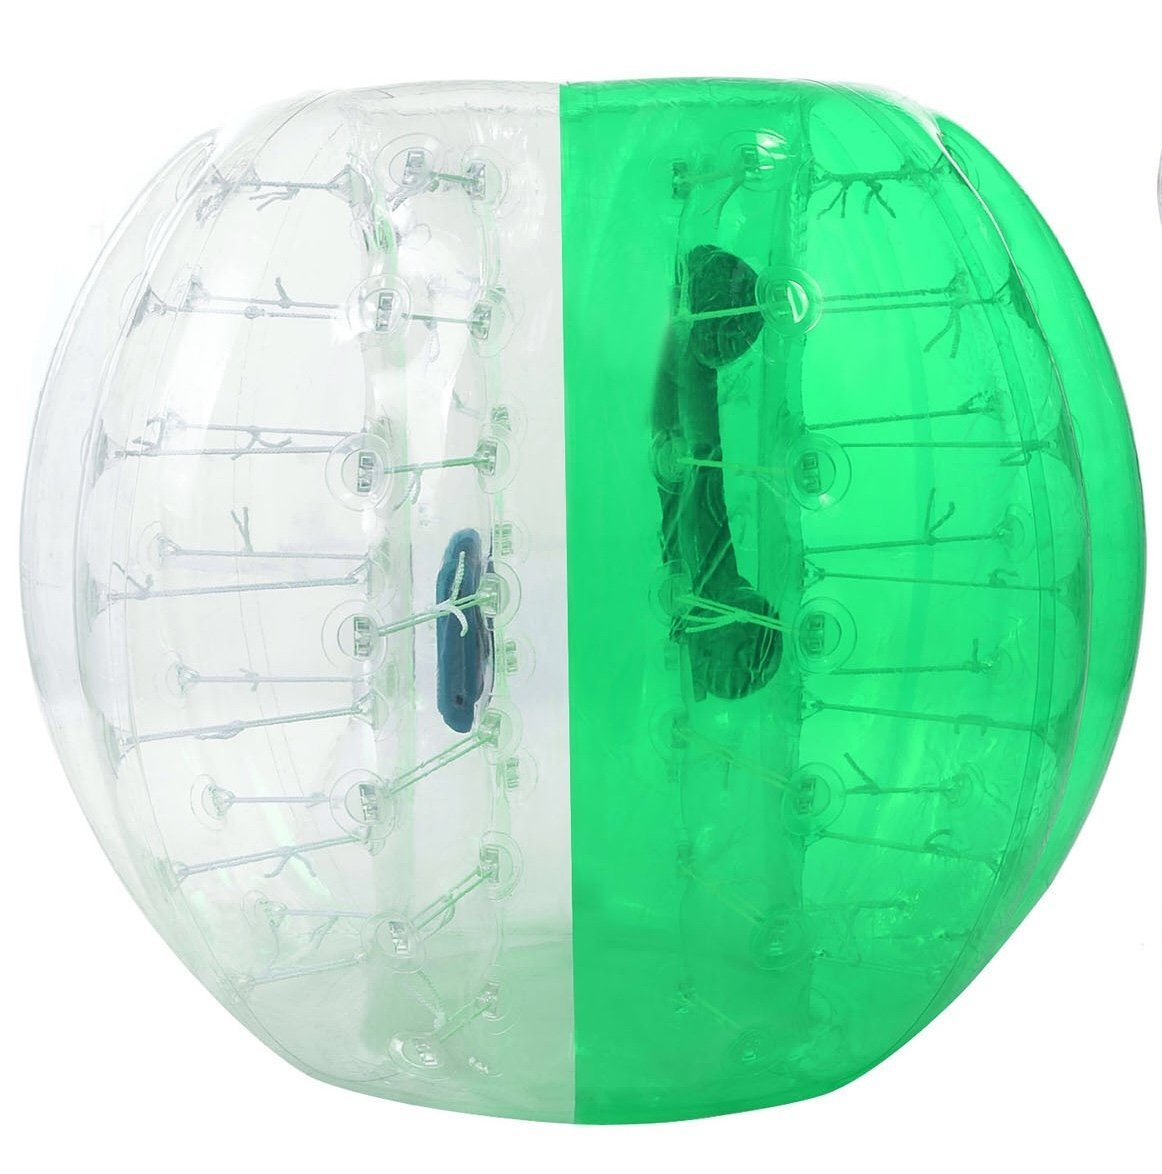 Oanon Inflatable Bumper Ball 1.2M 4FT/1.5M 5FT Diameter Bubble Soccer Ball Blow Up Toy, Inflatable Bumper Bubble Balls for Childs,Teens,Adults (White/Green 1.5M) by Oanon